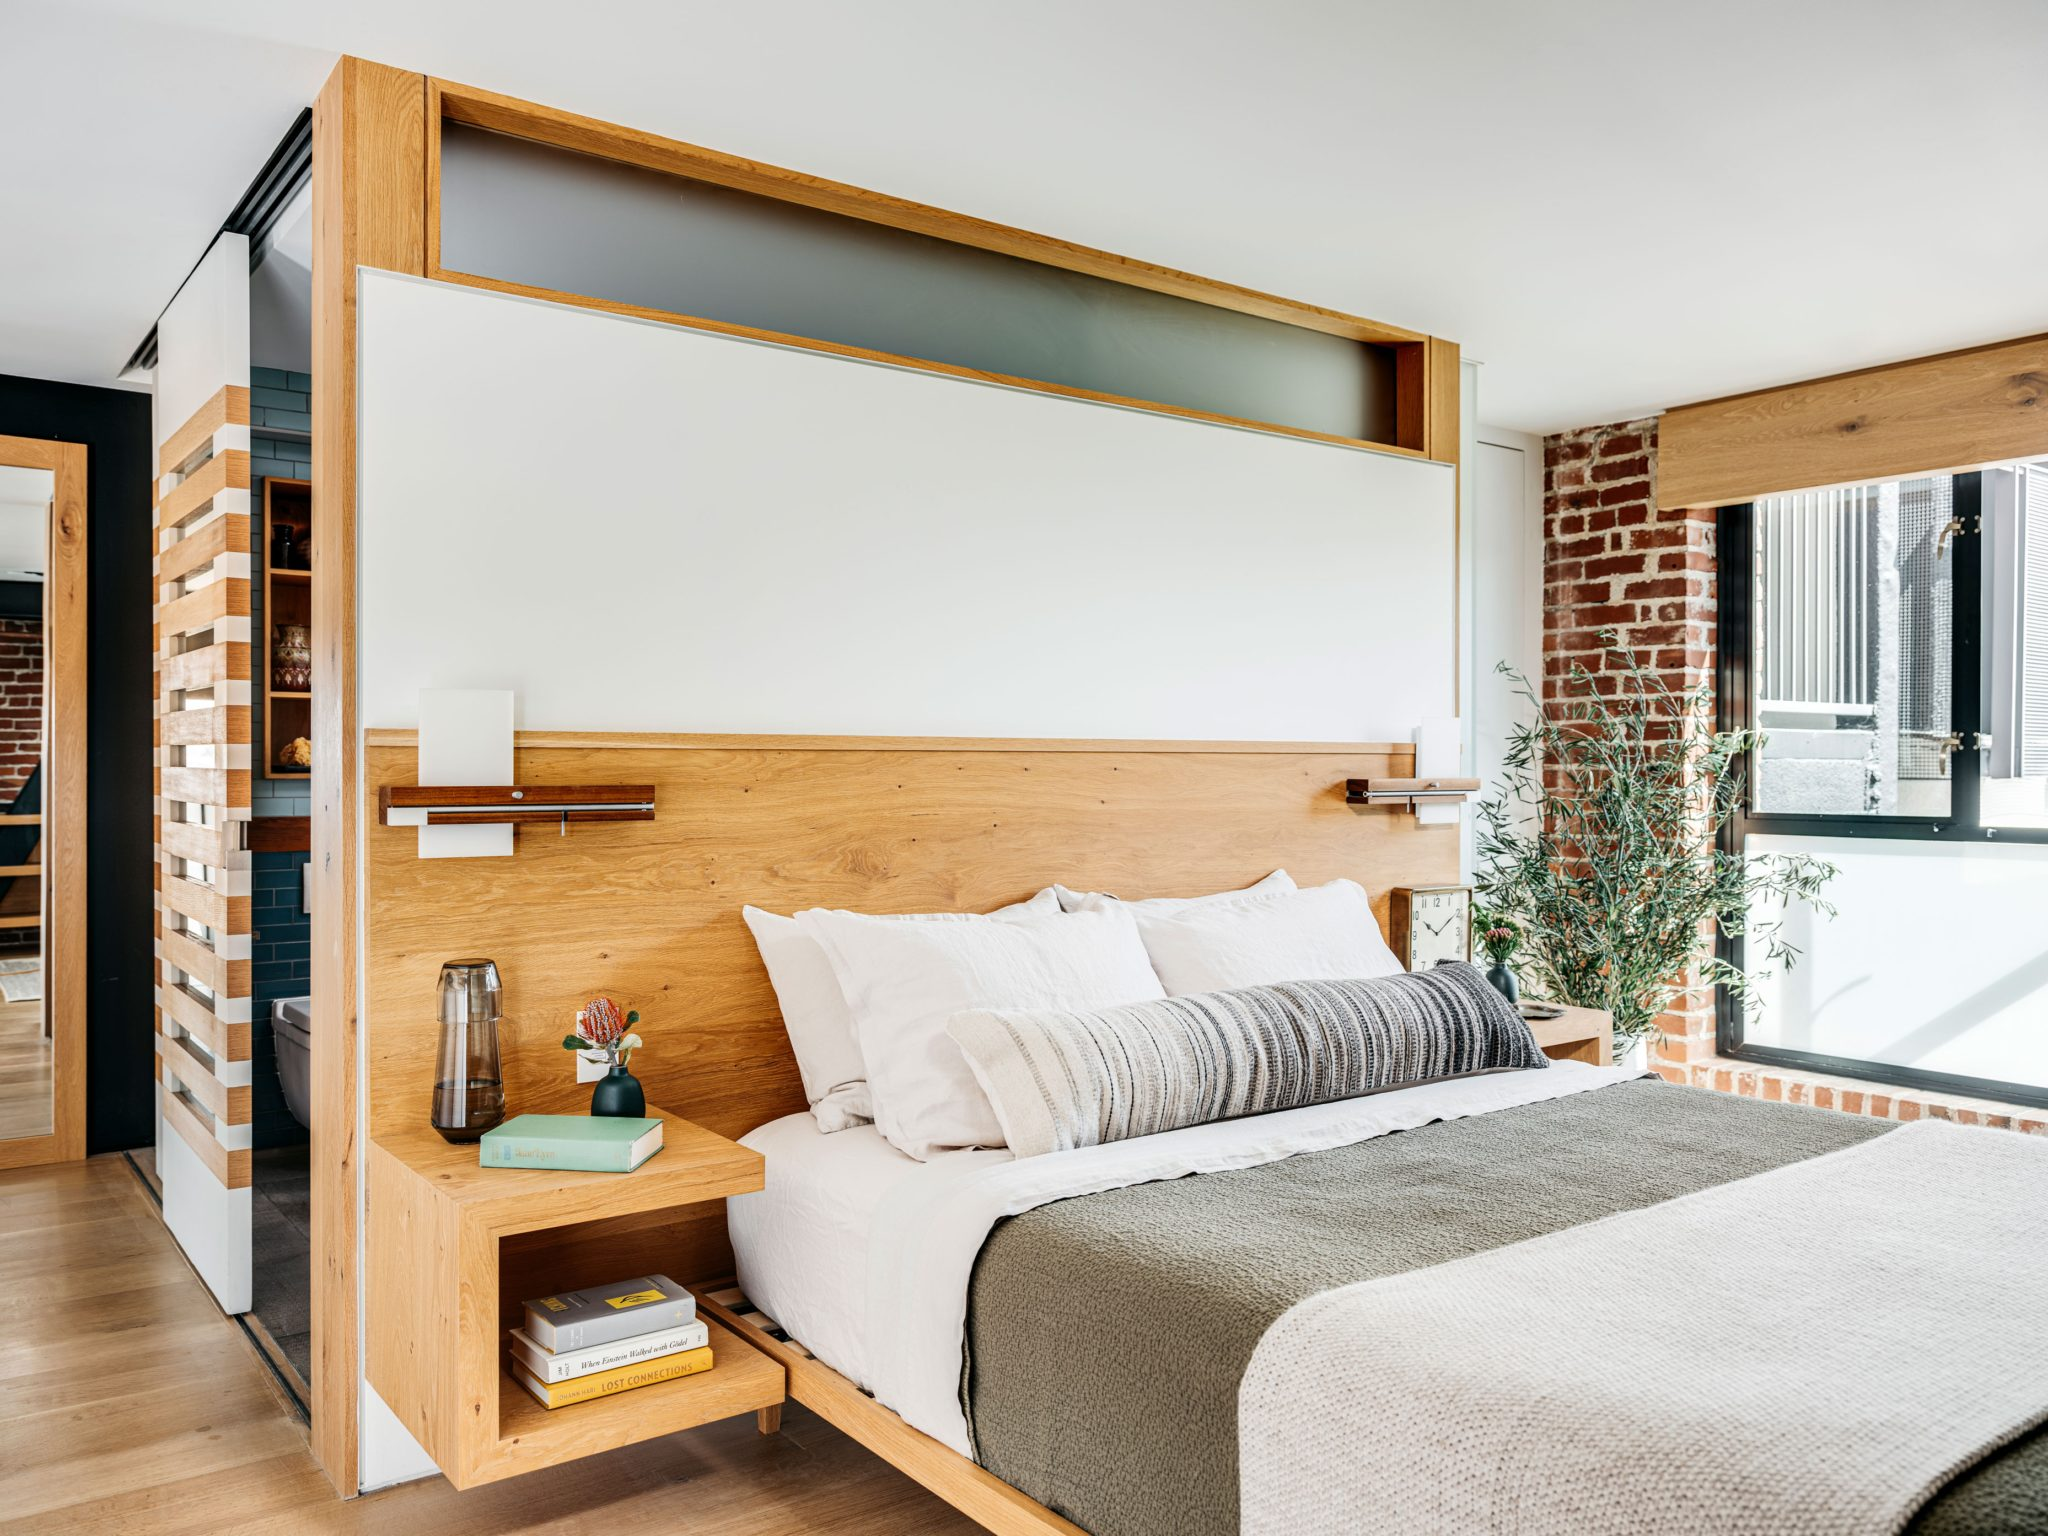 In the master bedroom, Murdock designed a custom white oak headboard with a platform and integrated floating nightstands for the clients.